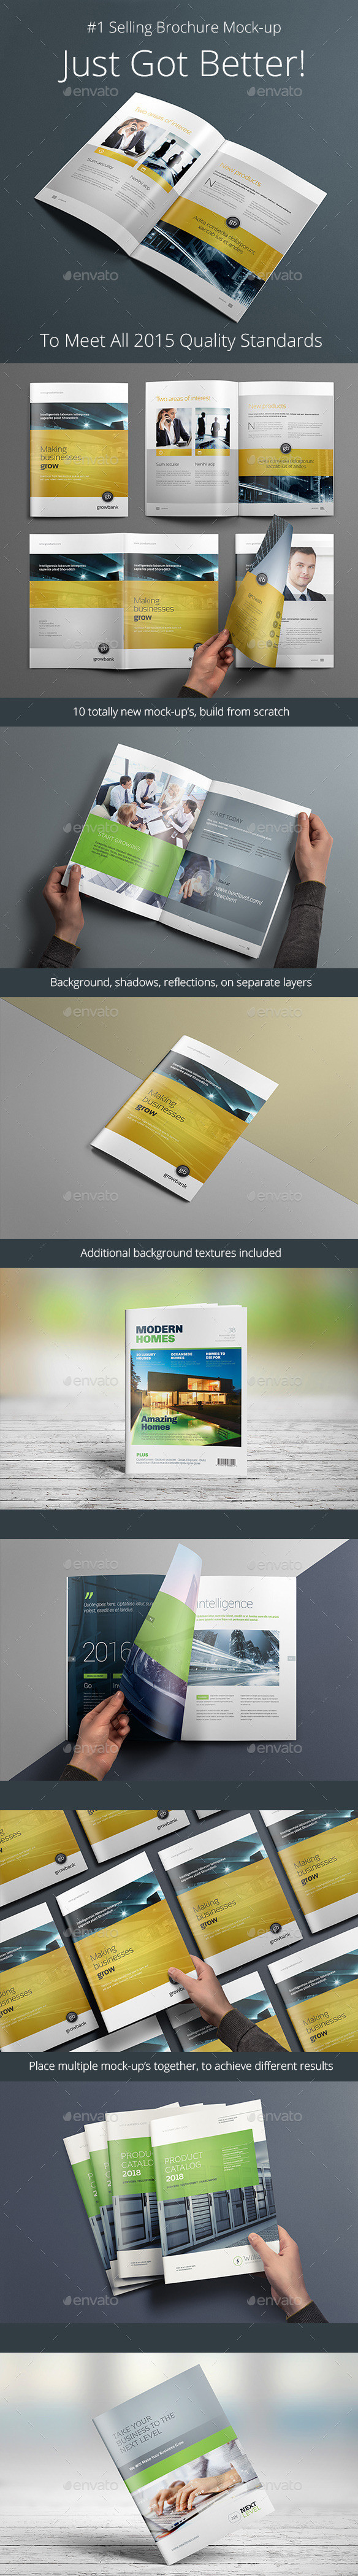 12 Free Brochure Mockup Psd Download Psd Templates Blog